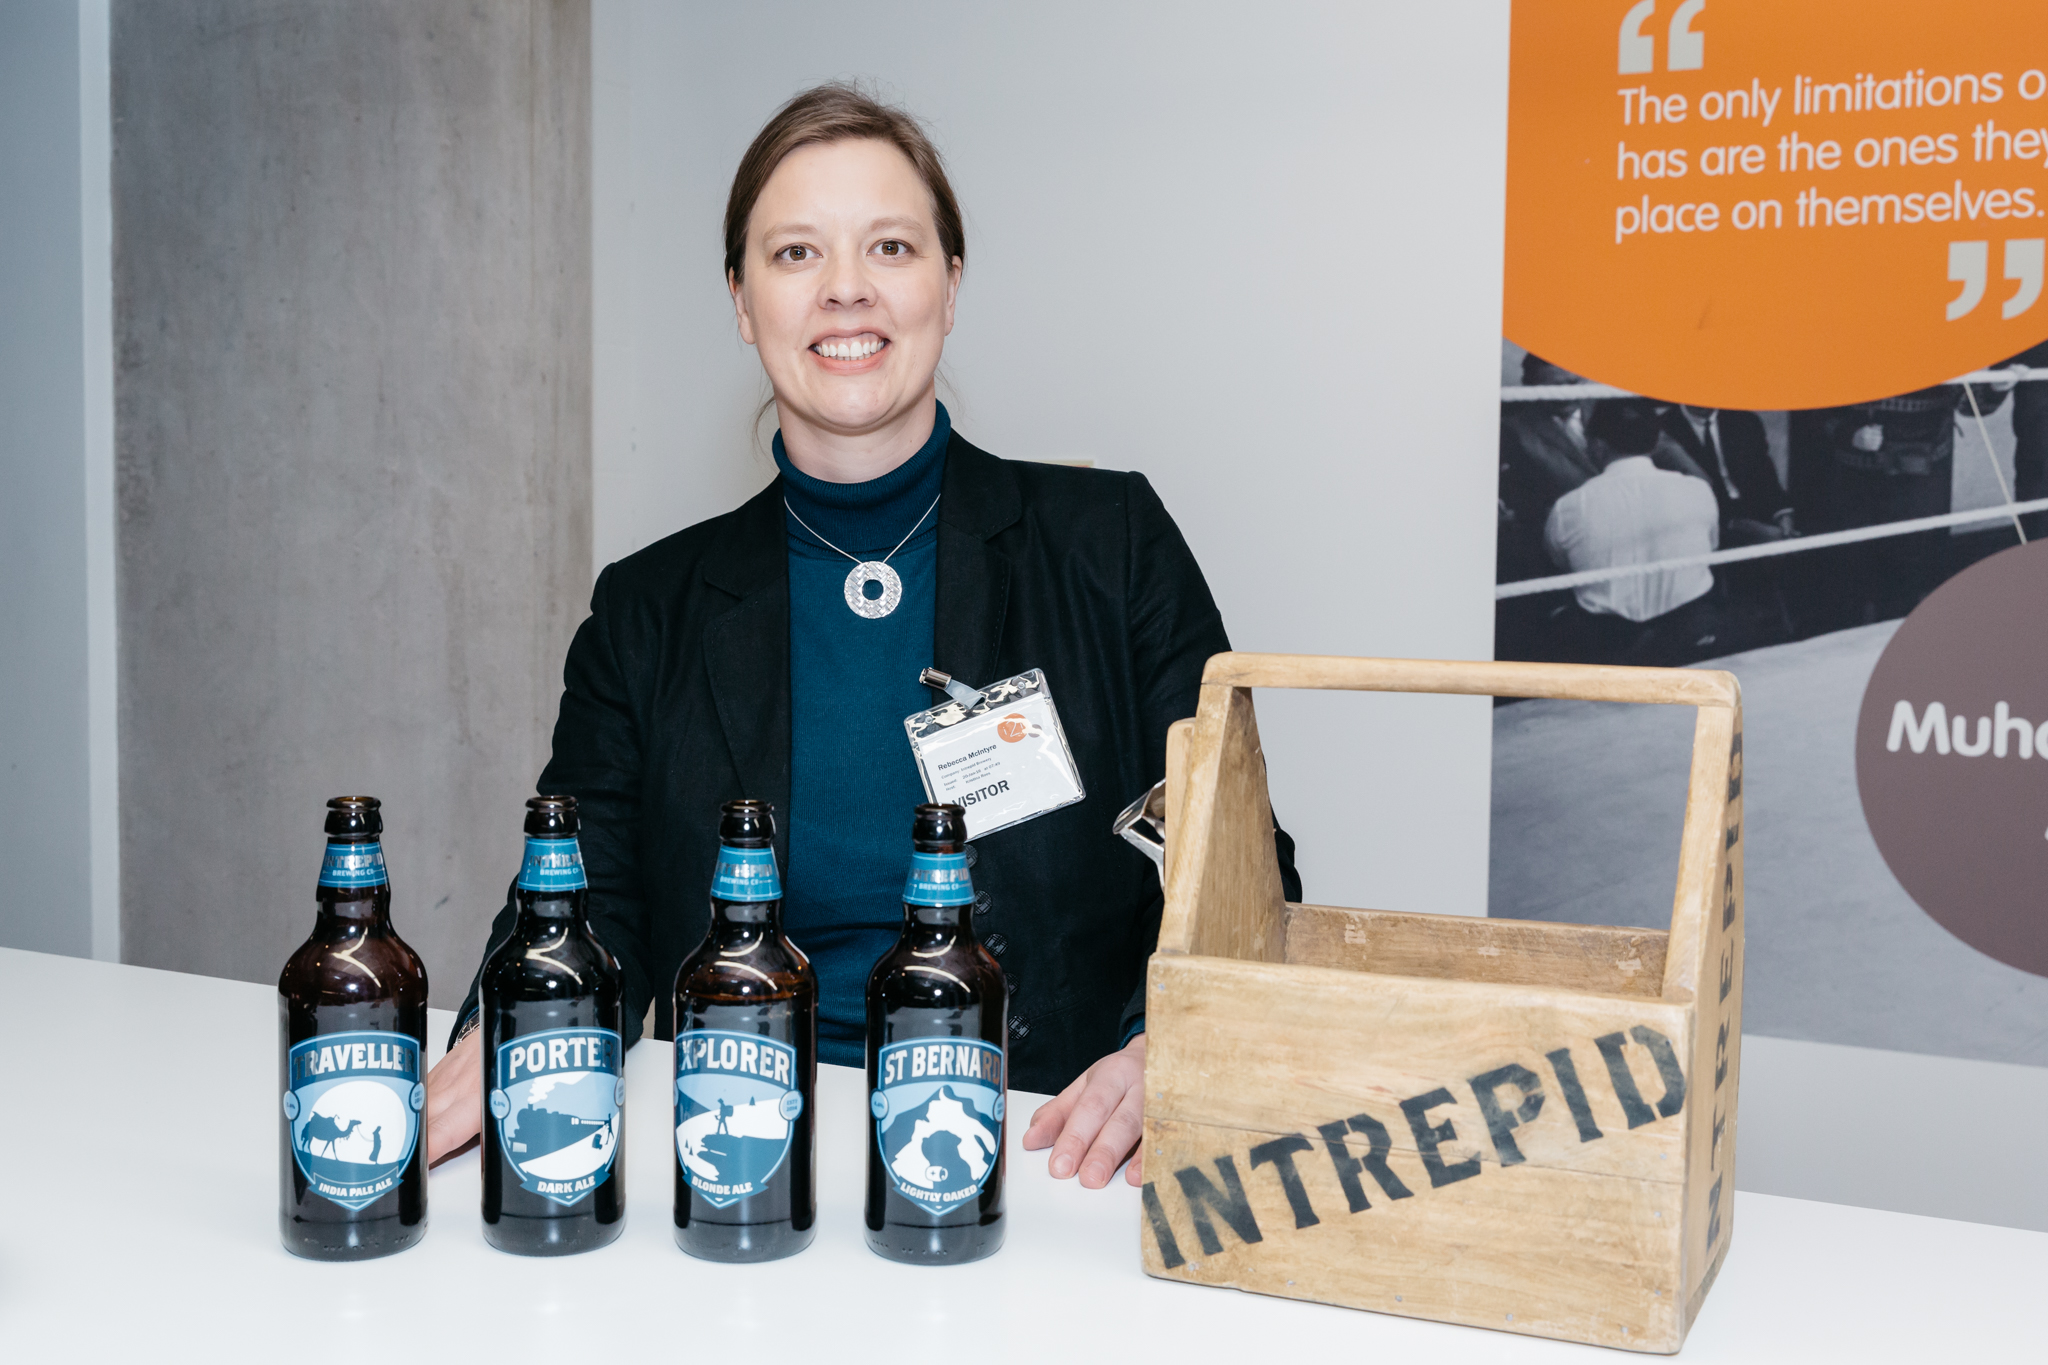 Intrepid Brewing